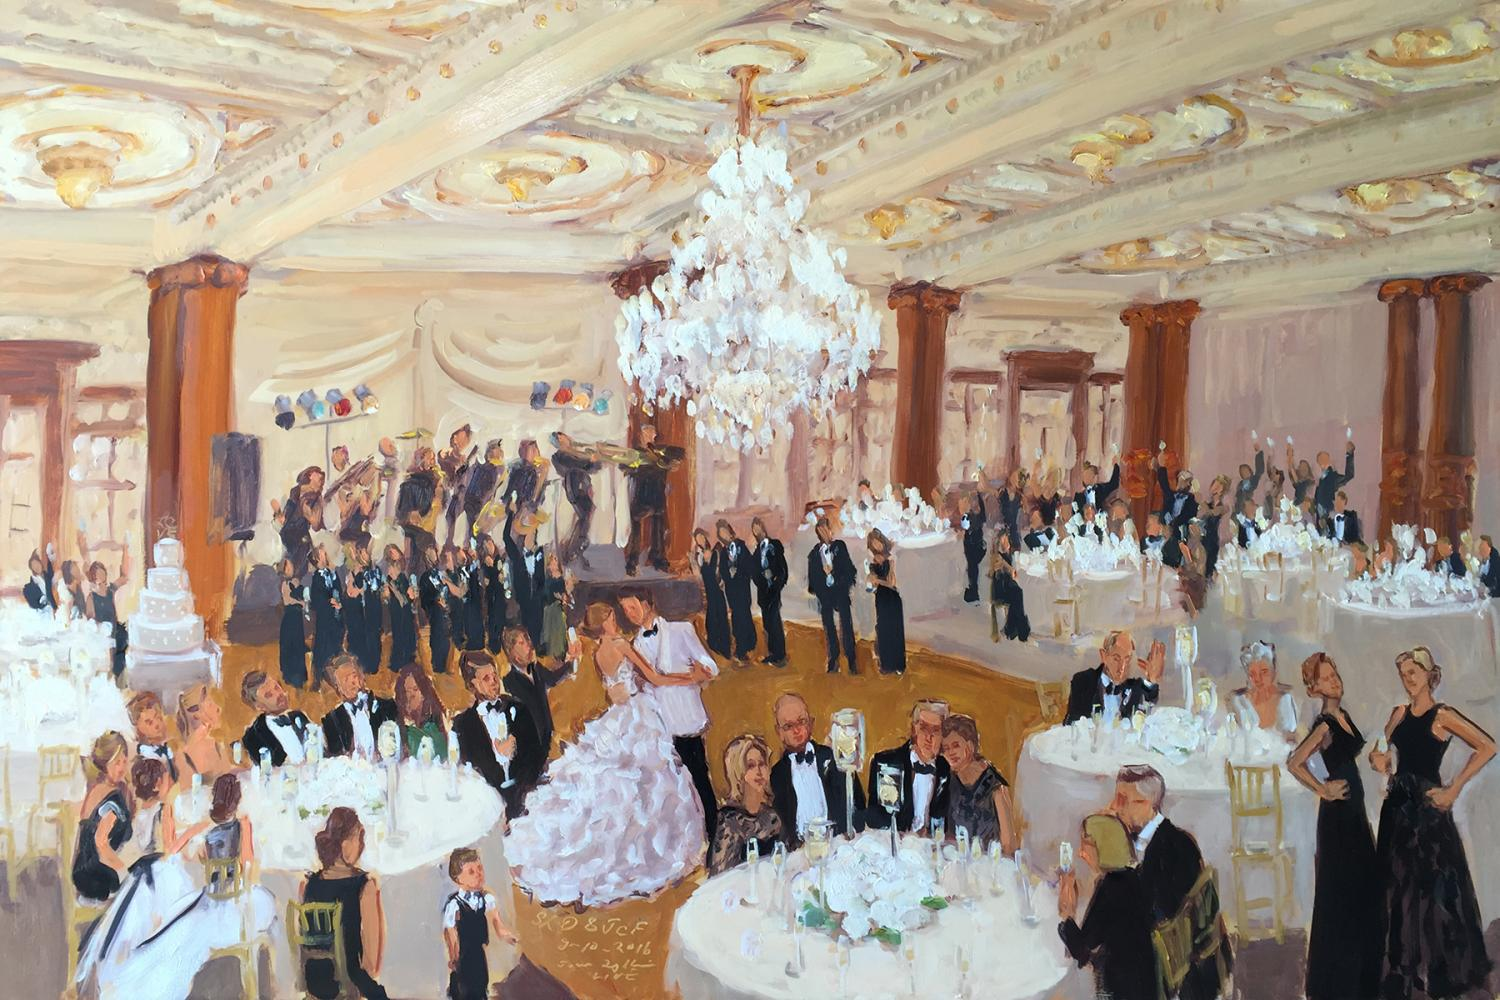 Crystal Tea Room Wedding painted live by The Event Painter